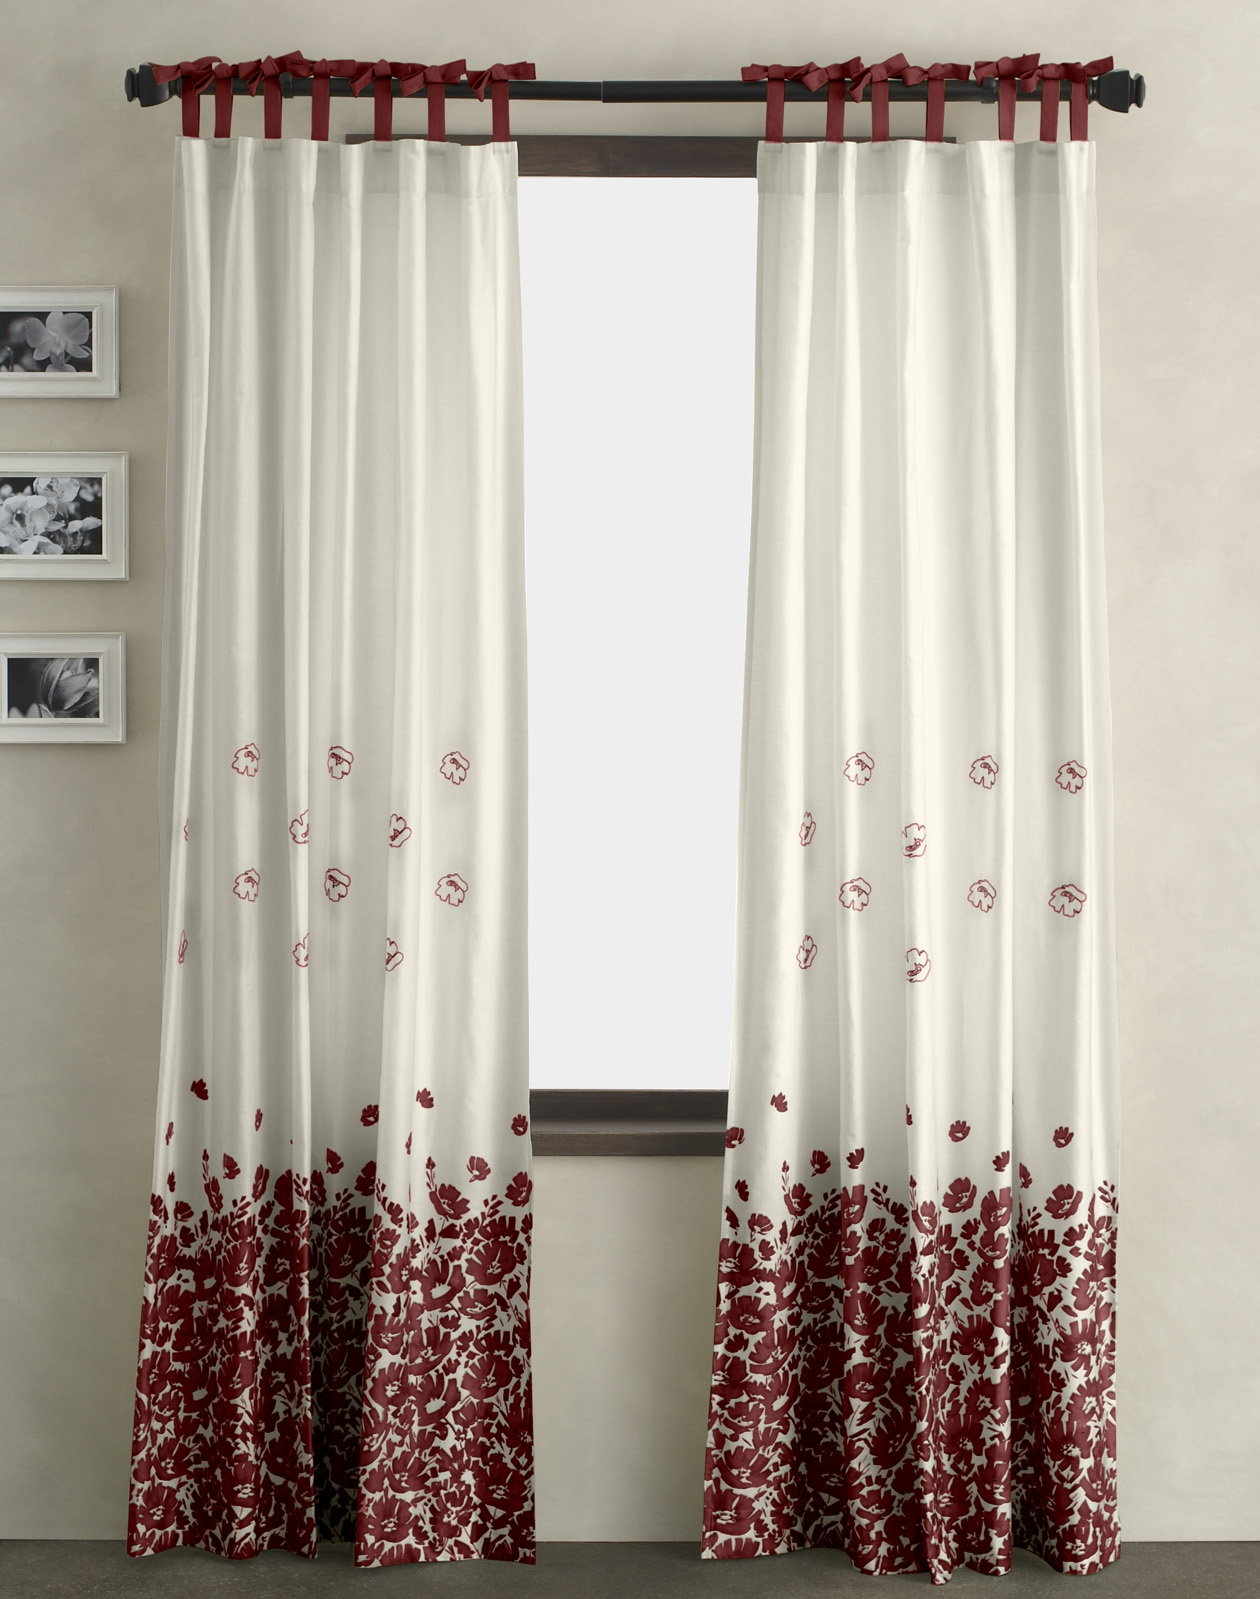 Window Dress Up Your Windows With Best Walmart Curtain Design With Double Panel Shower Curtains (View 21 of 25)